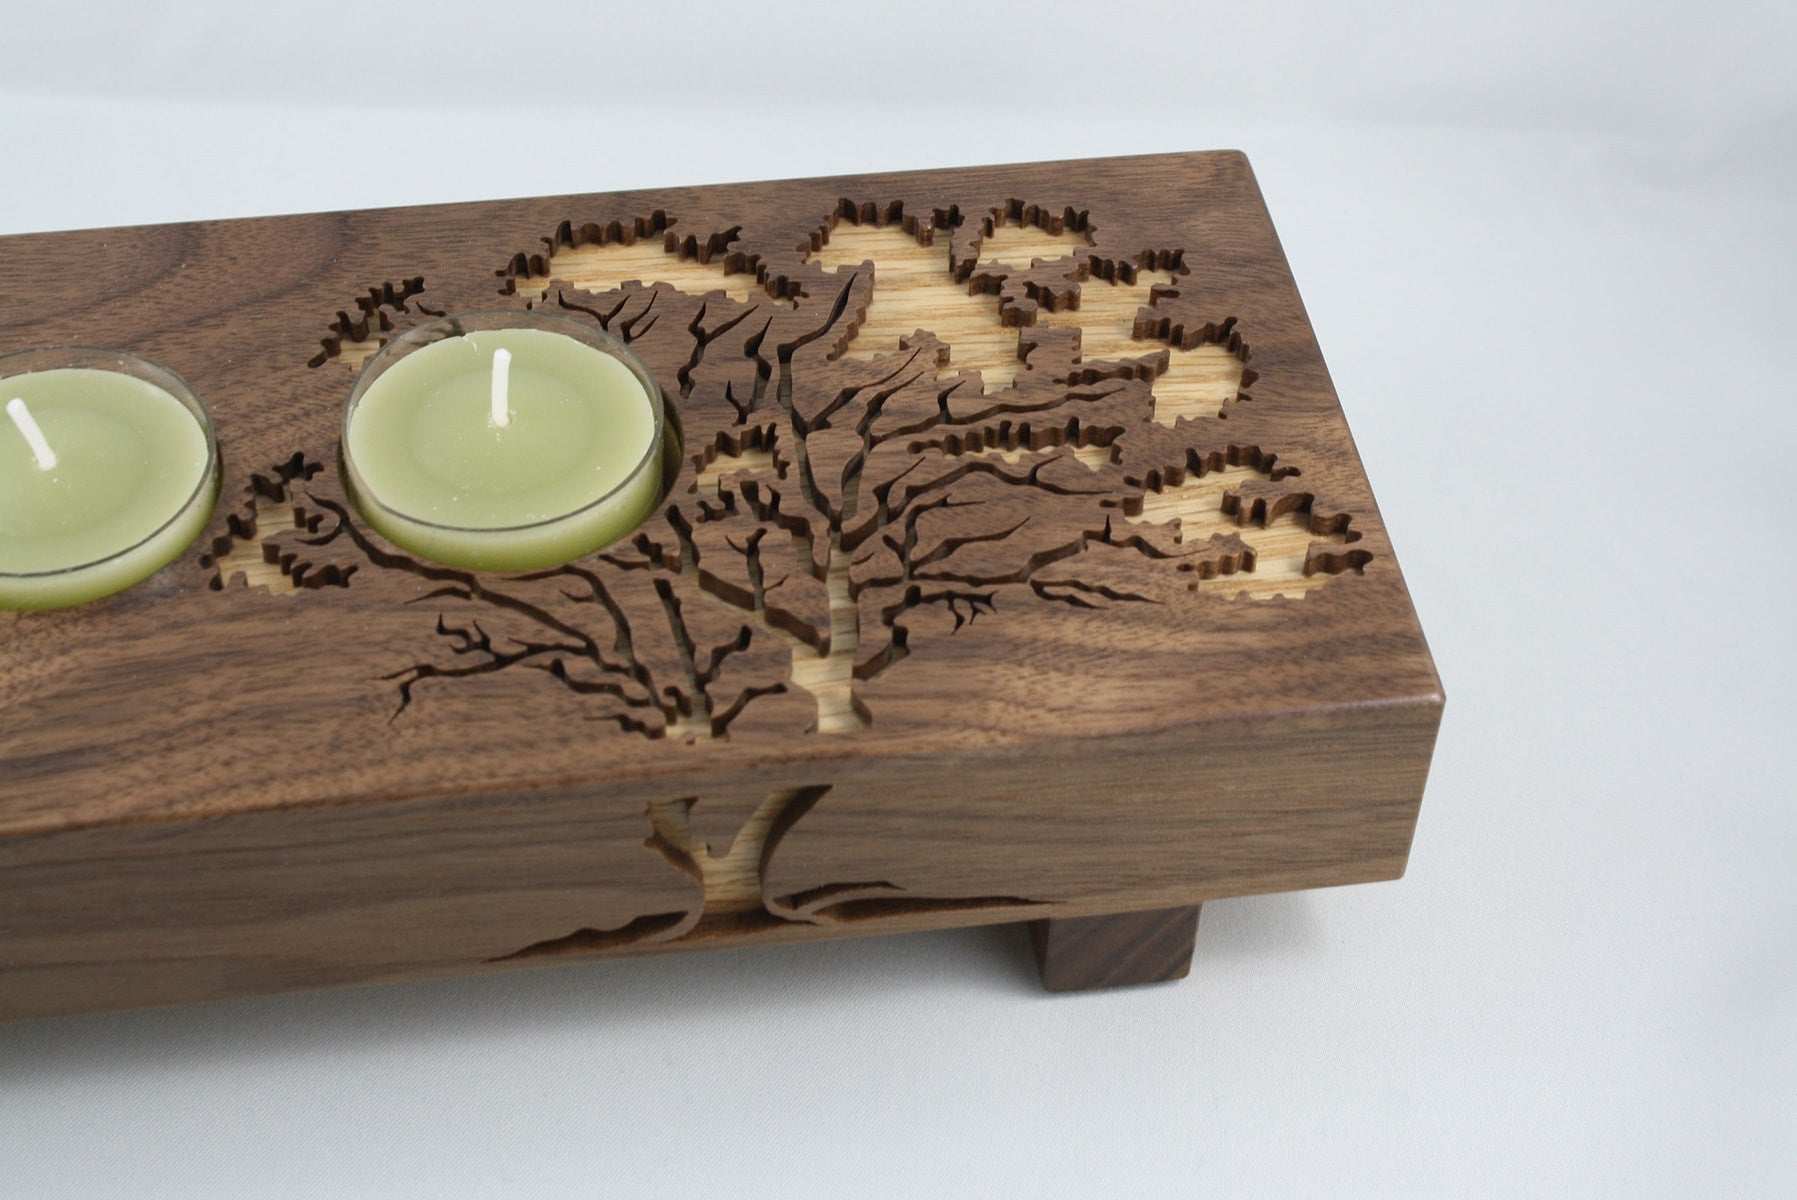 Arbutus candle holder by Mokajade Designs